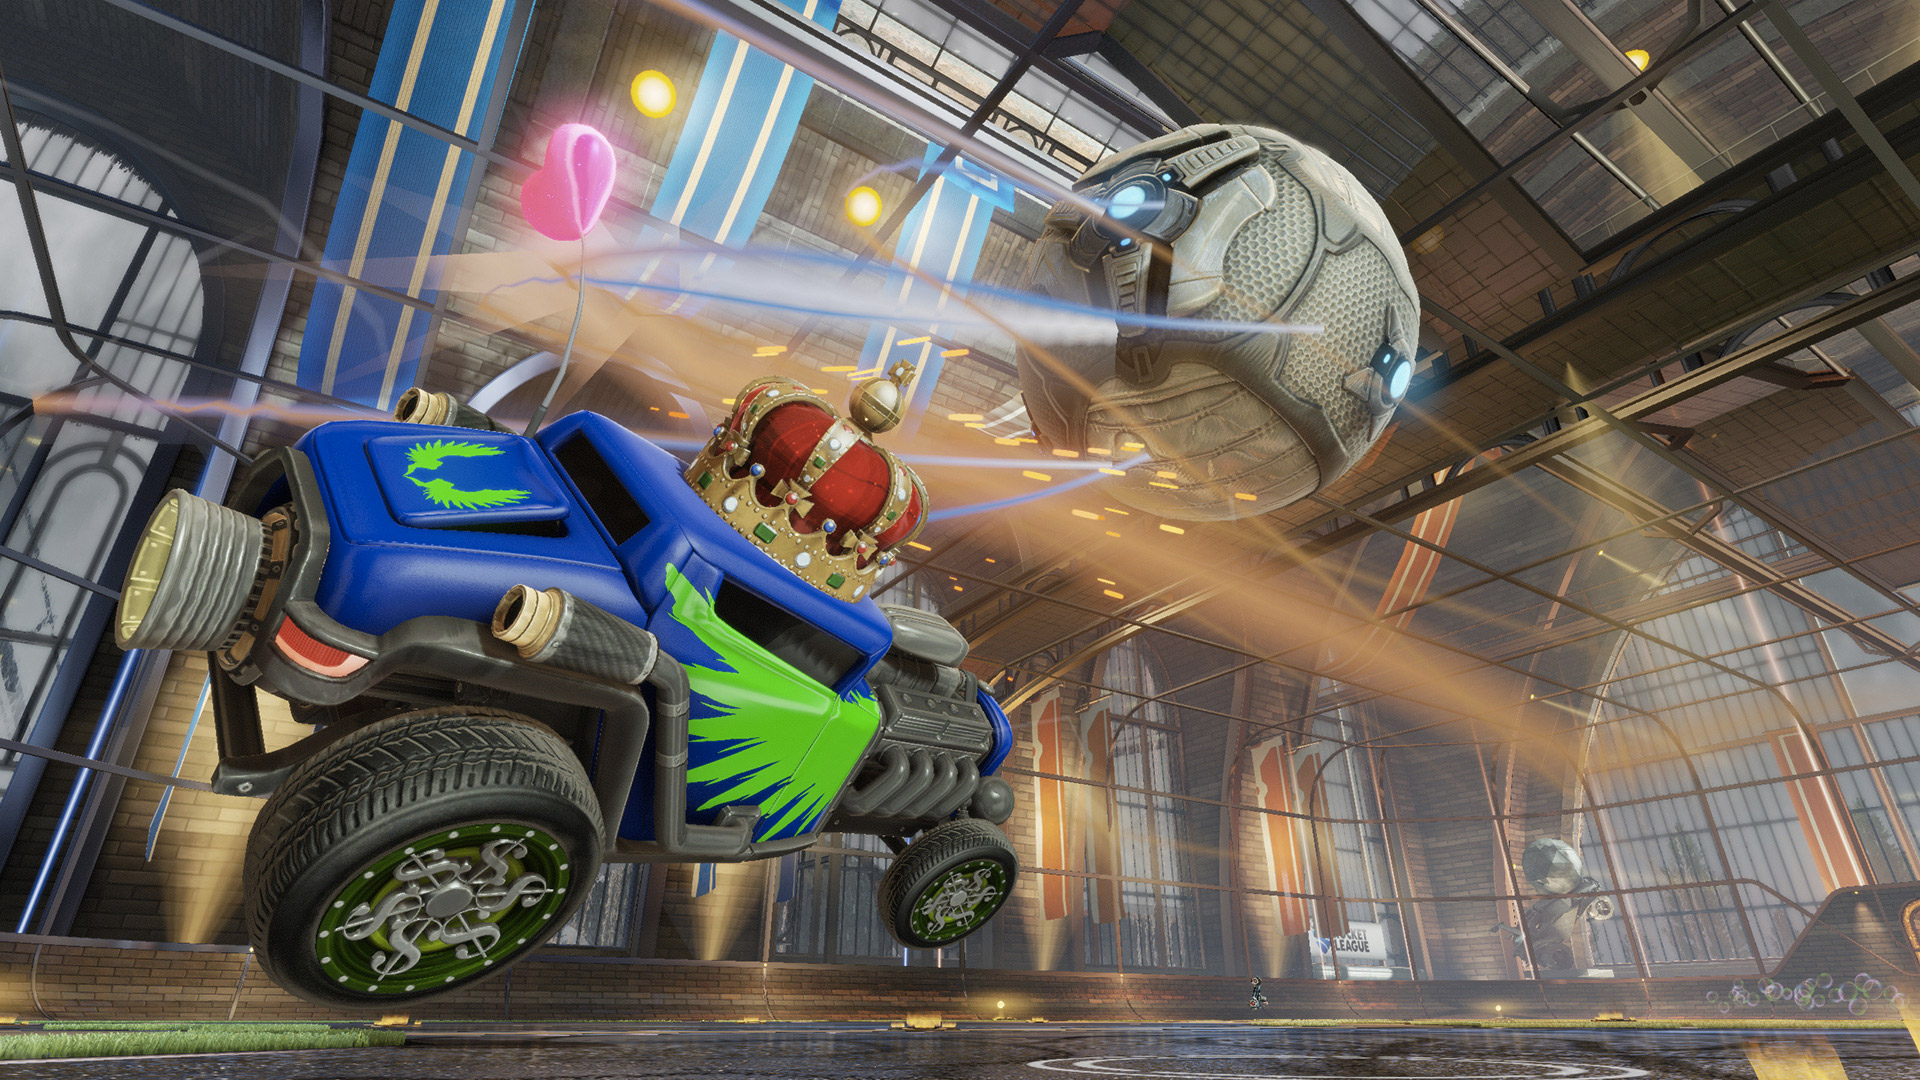 It's not too late to get good at Rocket League